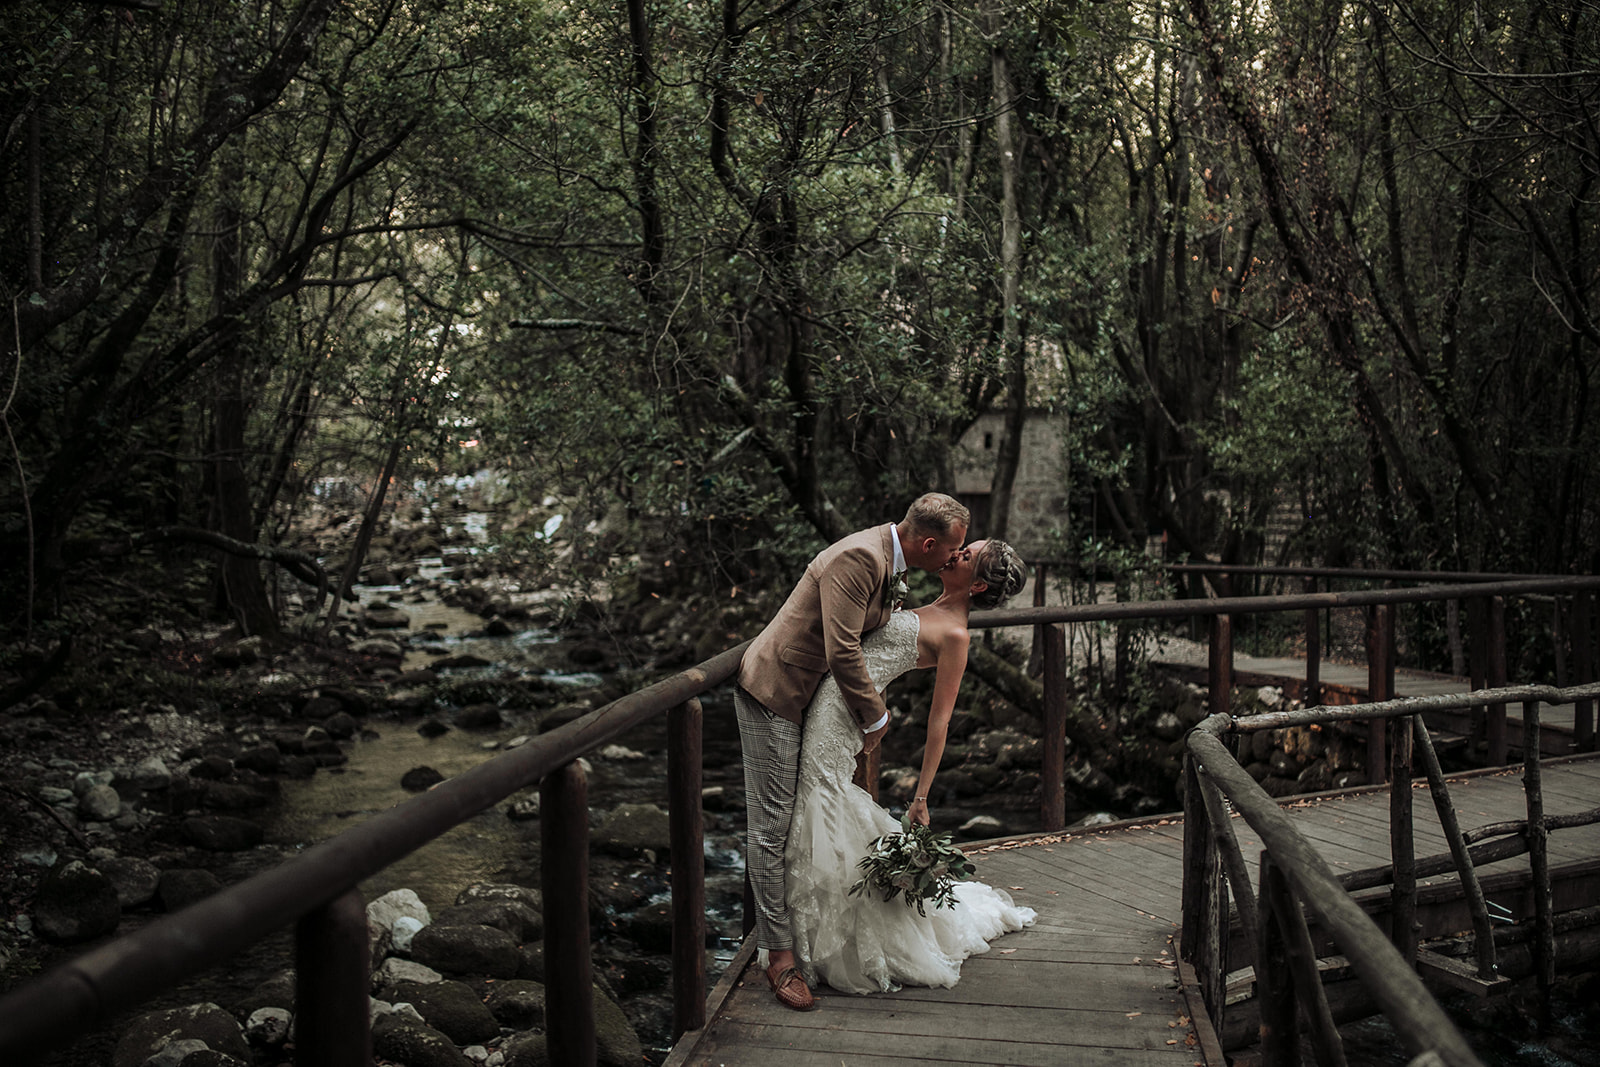 This image by Martina Škrobot Photography shows a happy couple on a wooden bridge next to a river. He is leaning the bride backwards and giving her a kiss.